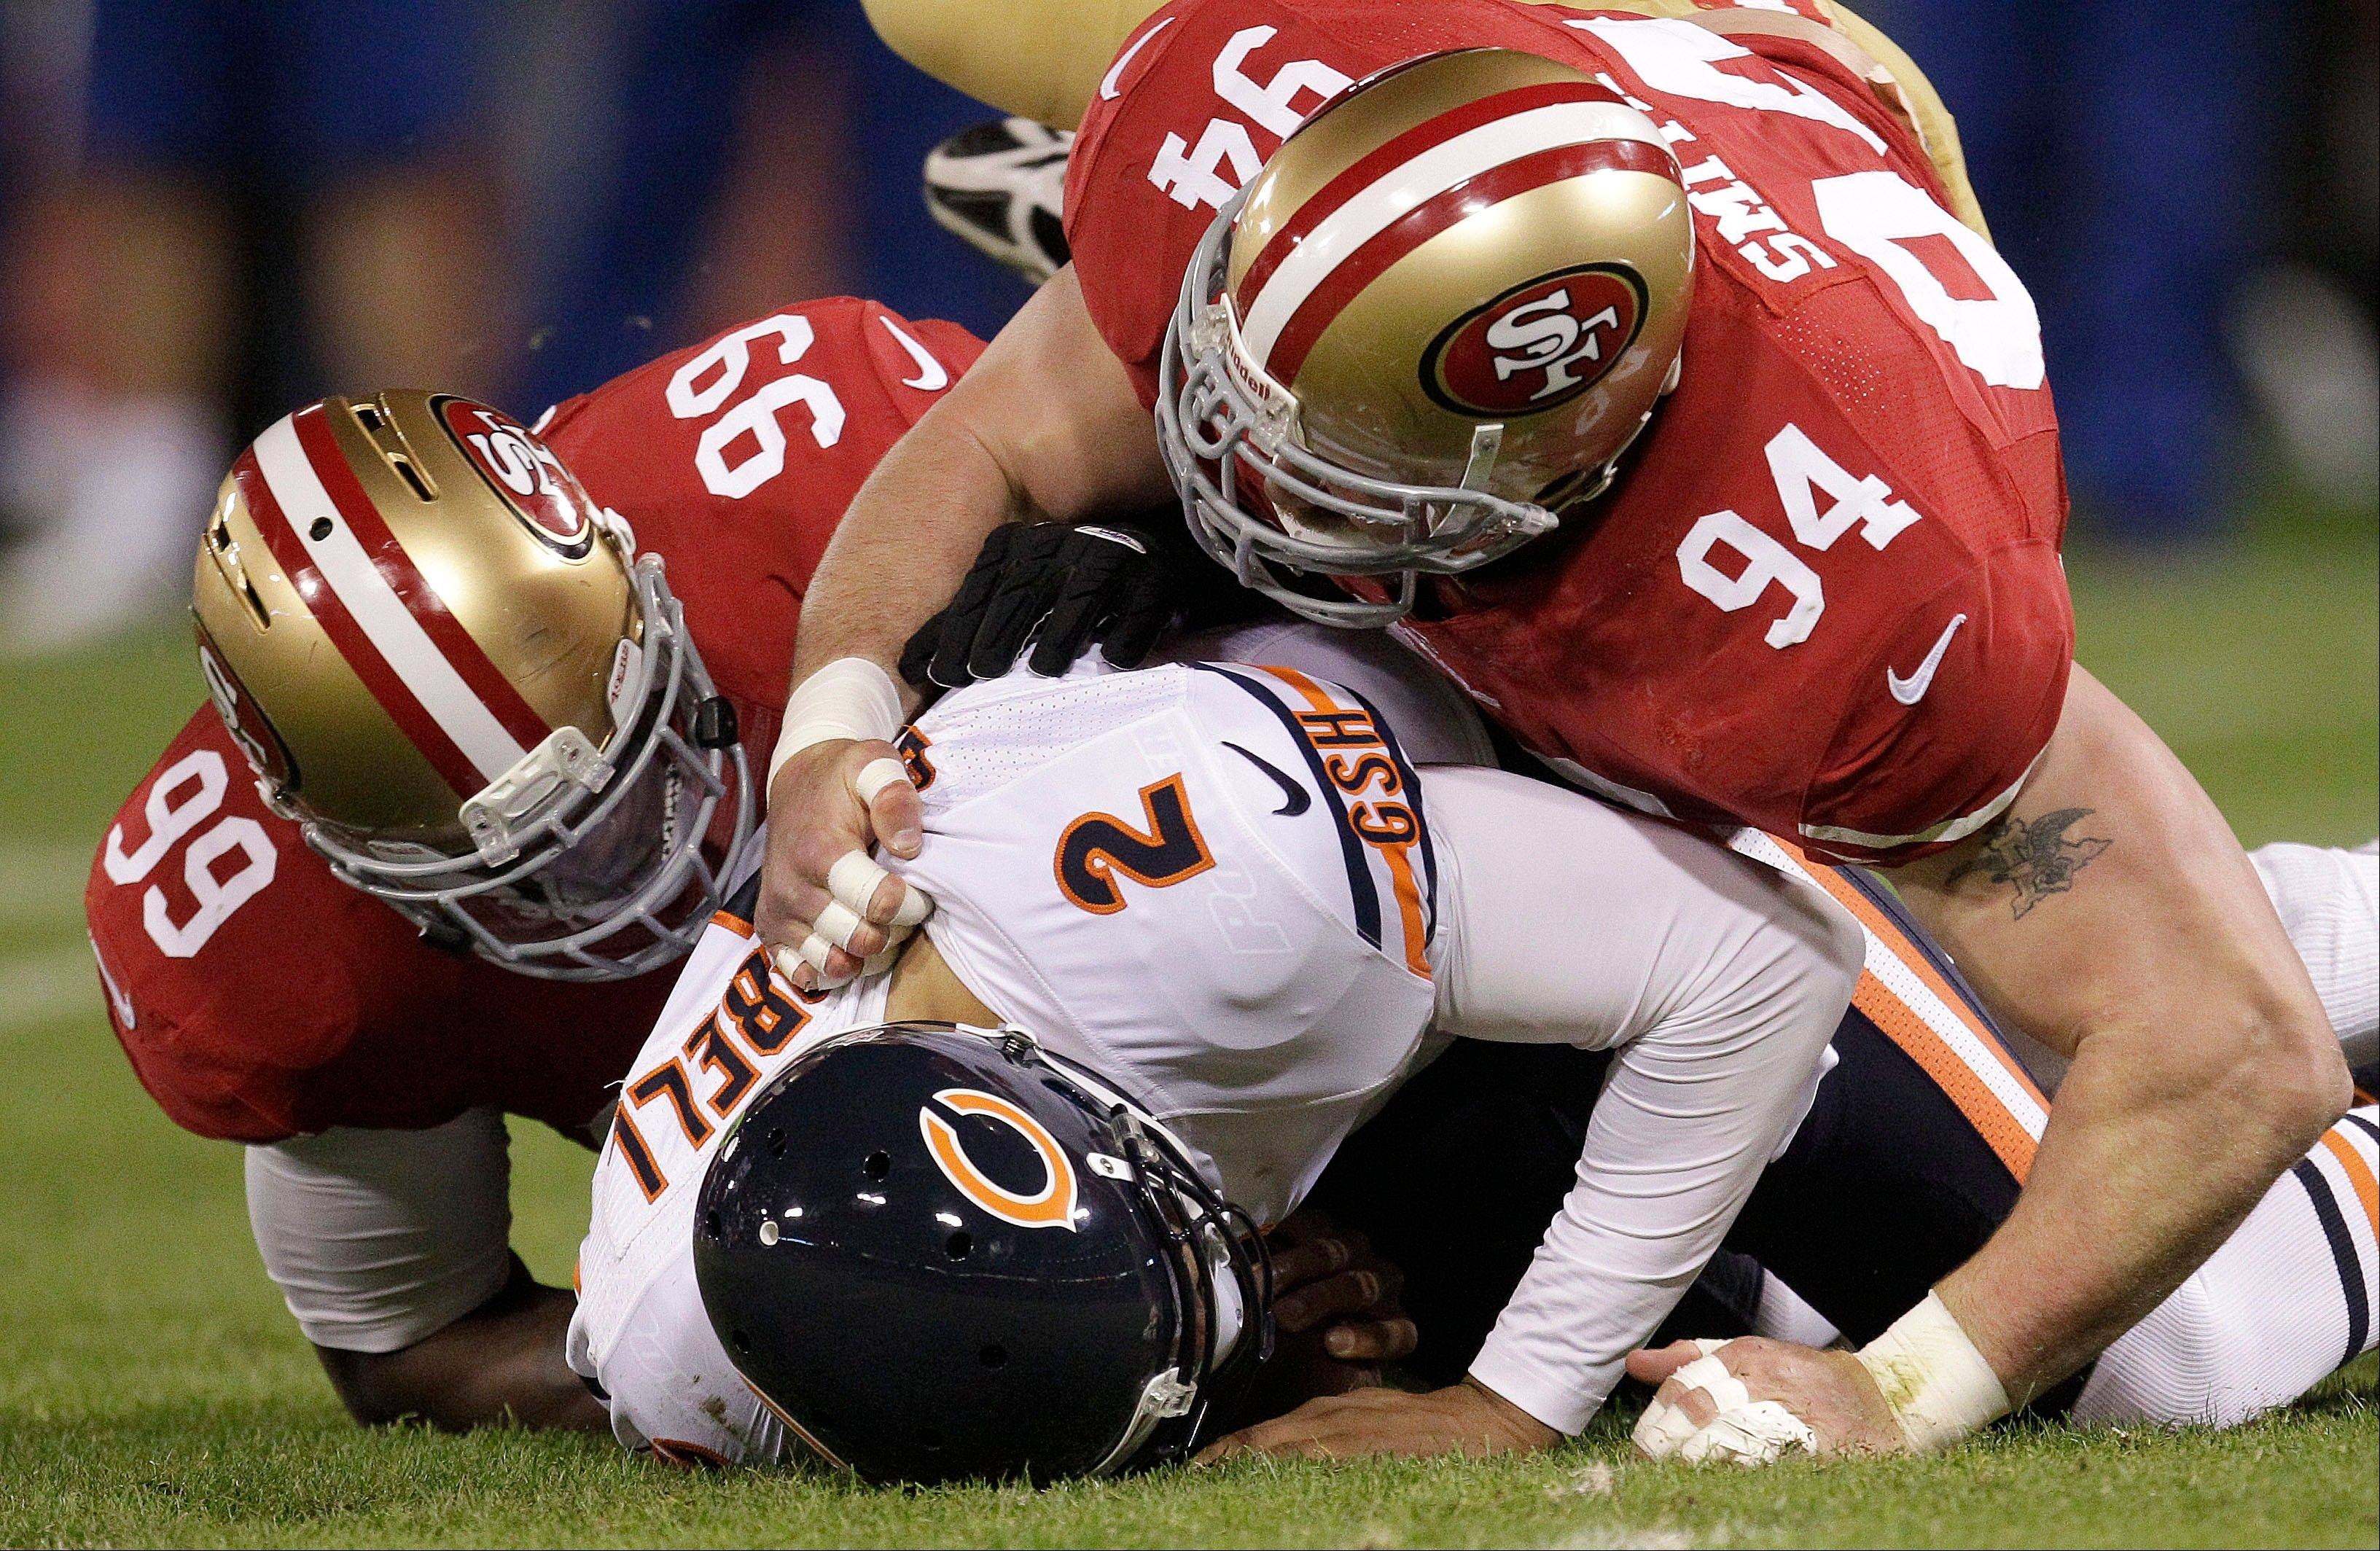 Chicago Bears quarterback Jason Campbell is sacked by San Francisco 49ers linebacker Aldon Smith as defensive tackle Justin Smith follows the play during the first quarter.